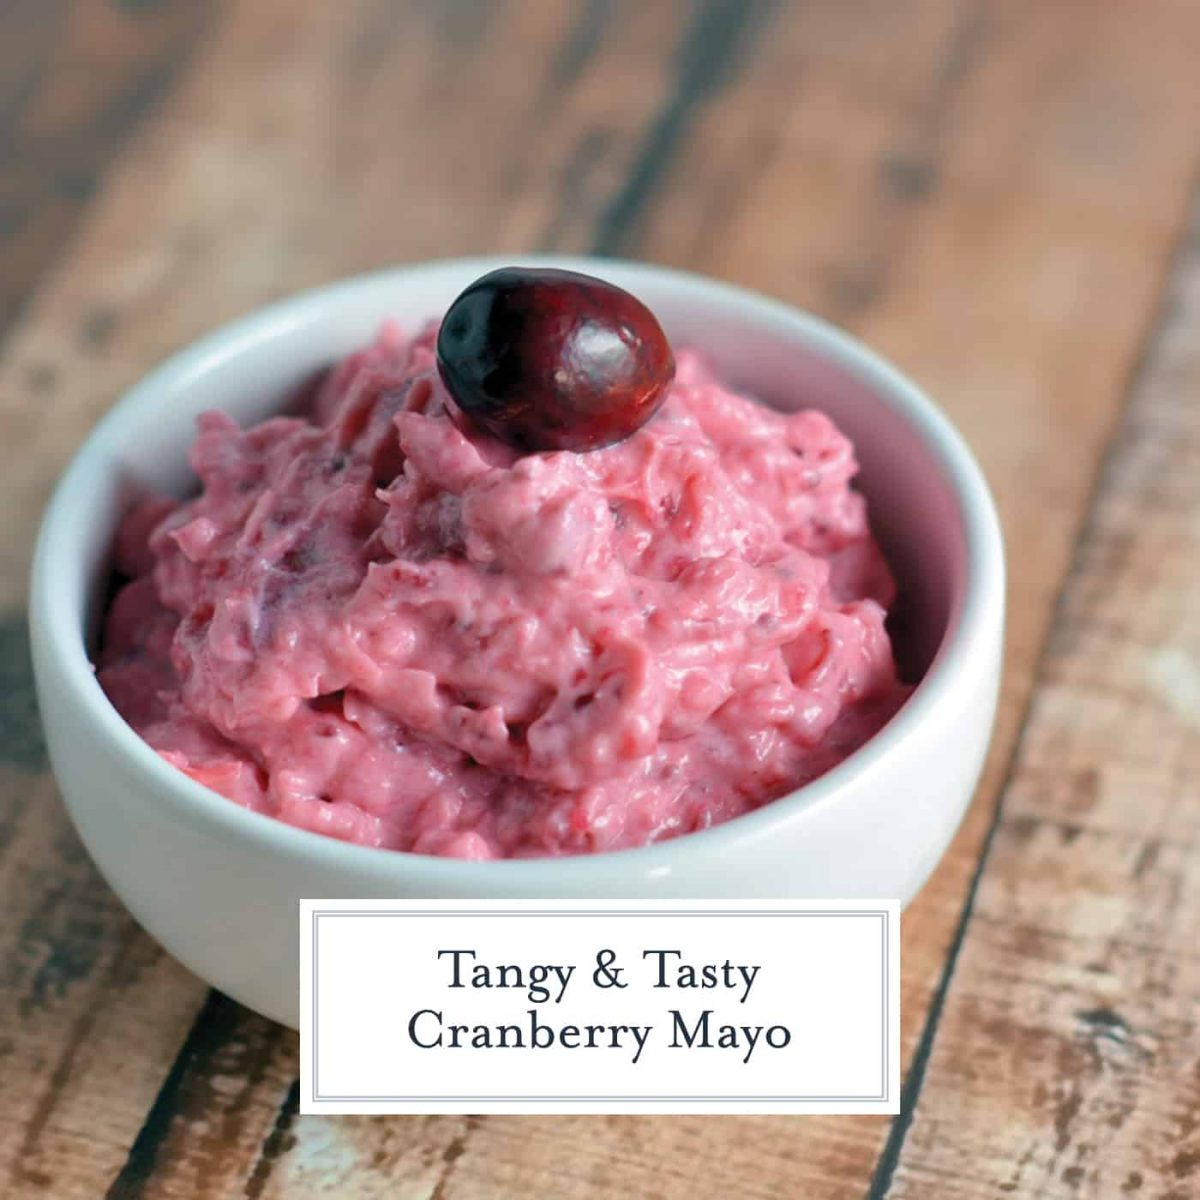 If you like mayonnaise, you will LOVE my Cranberry Mayo. Slightly sweet and just a touch tart, it adds a new dimension to any sandwich. #cranberrymayo #cranberrysauce #cranberryrelish www.savoryexperiments.com